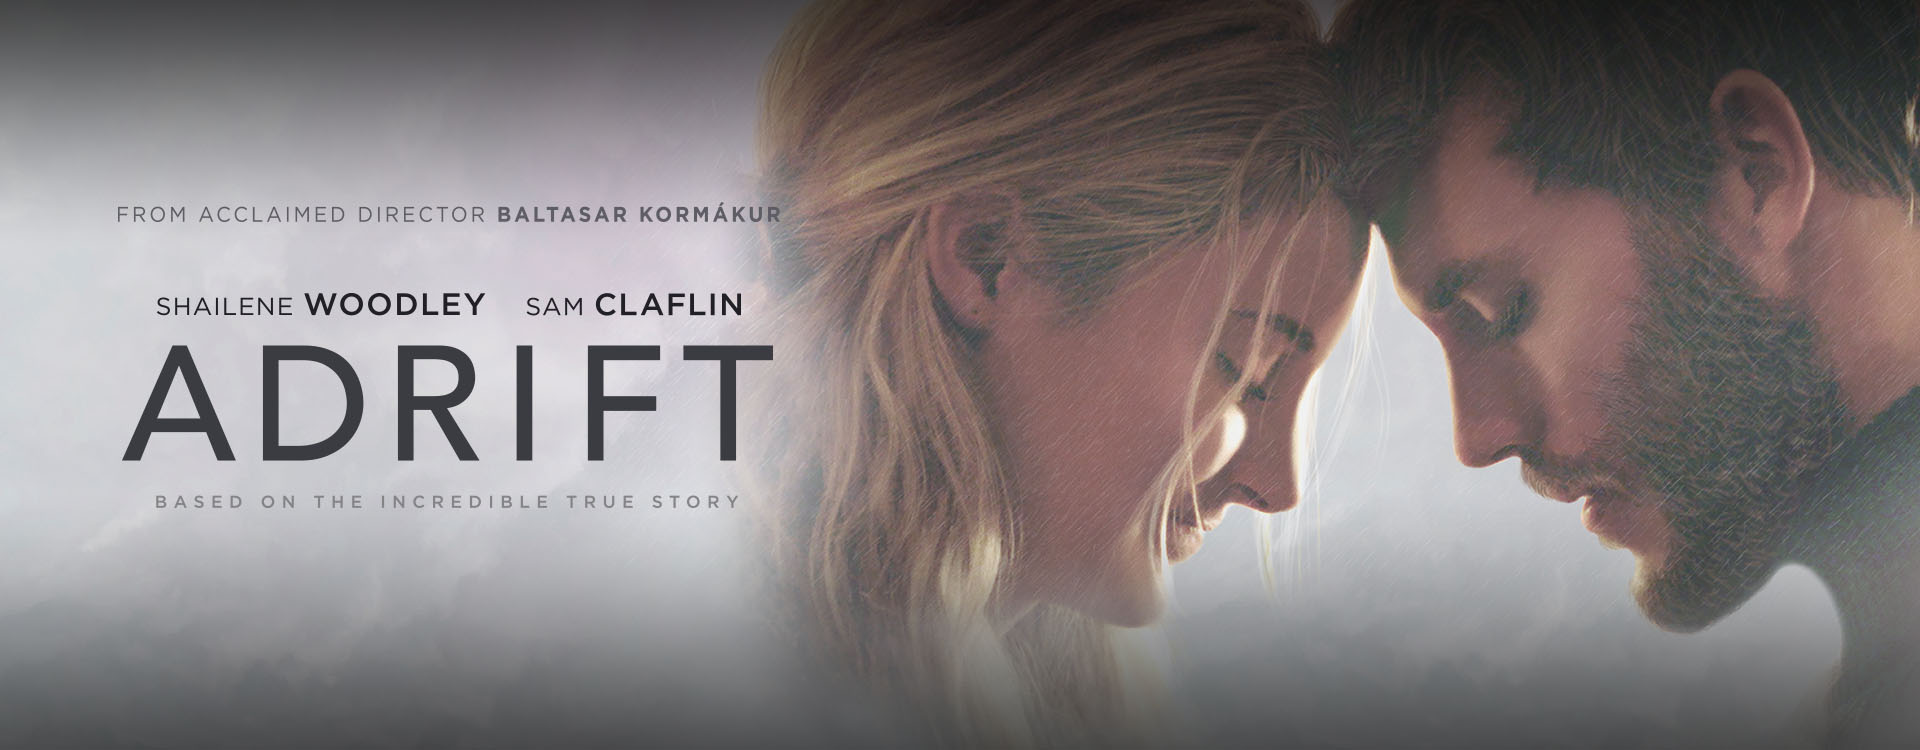 Adrift Review: Shailene Woodley and Sam Claflin keep this boat afloat. | We Live Entertainment